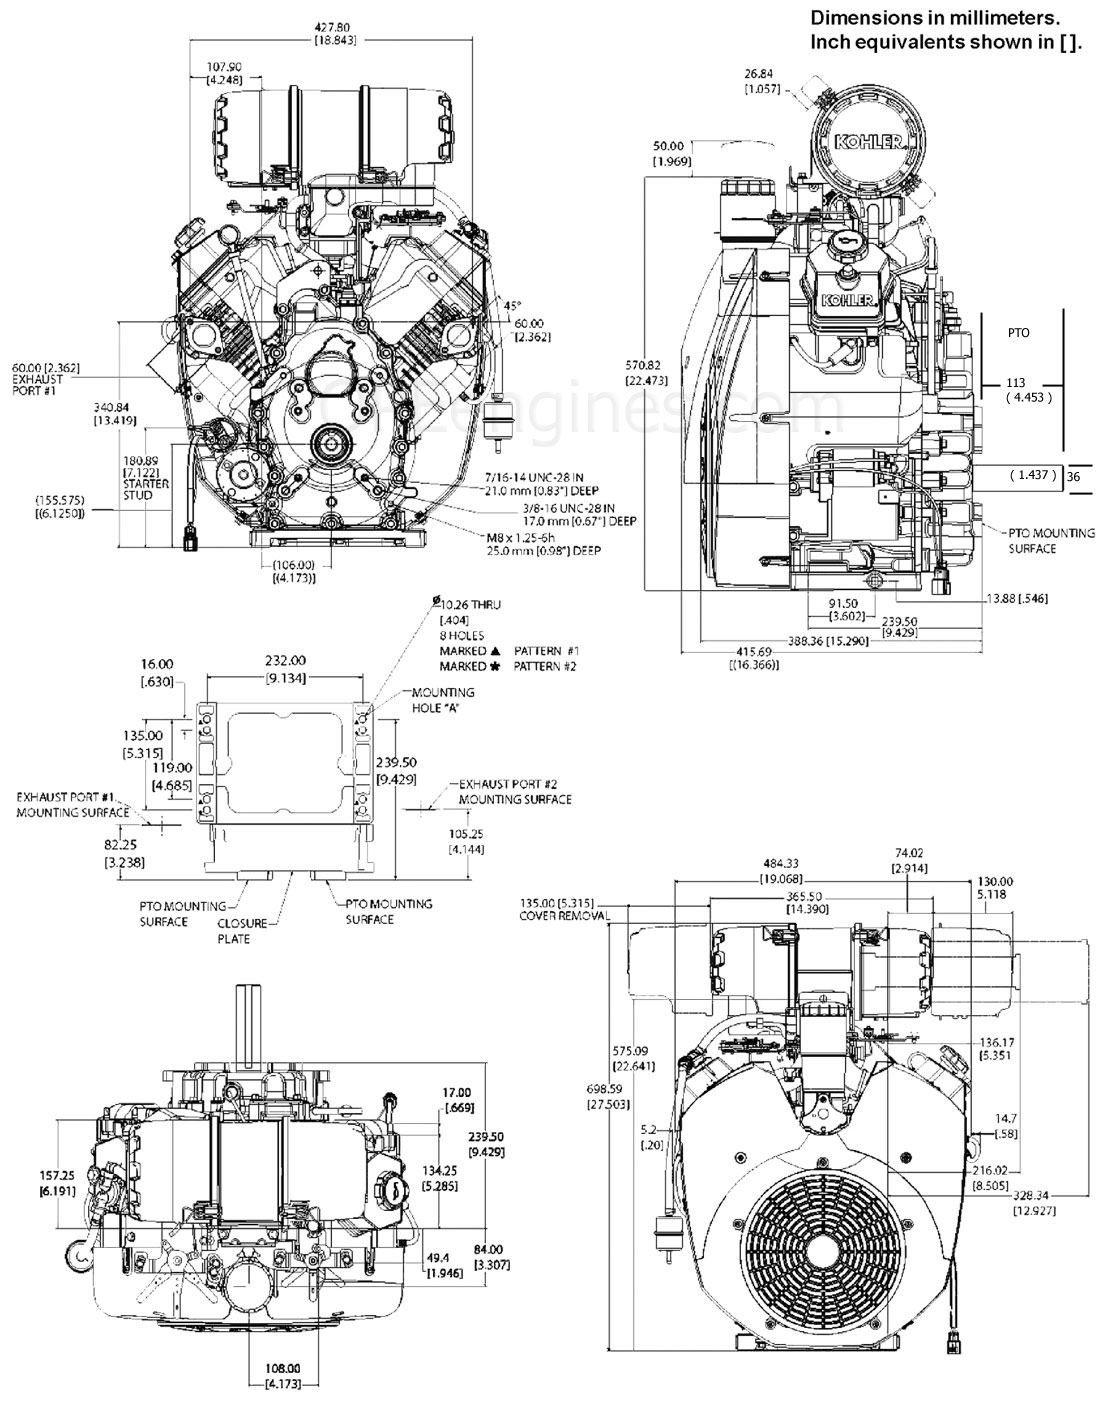 kohler engine wiring diagram Collection-Kohler Magnum 20 Parts Diagram Inspirational Charming Diagram Lawn Mower Engine Ideas Electrical Circuit 14-d